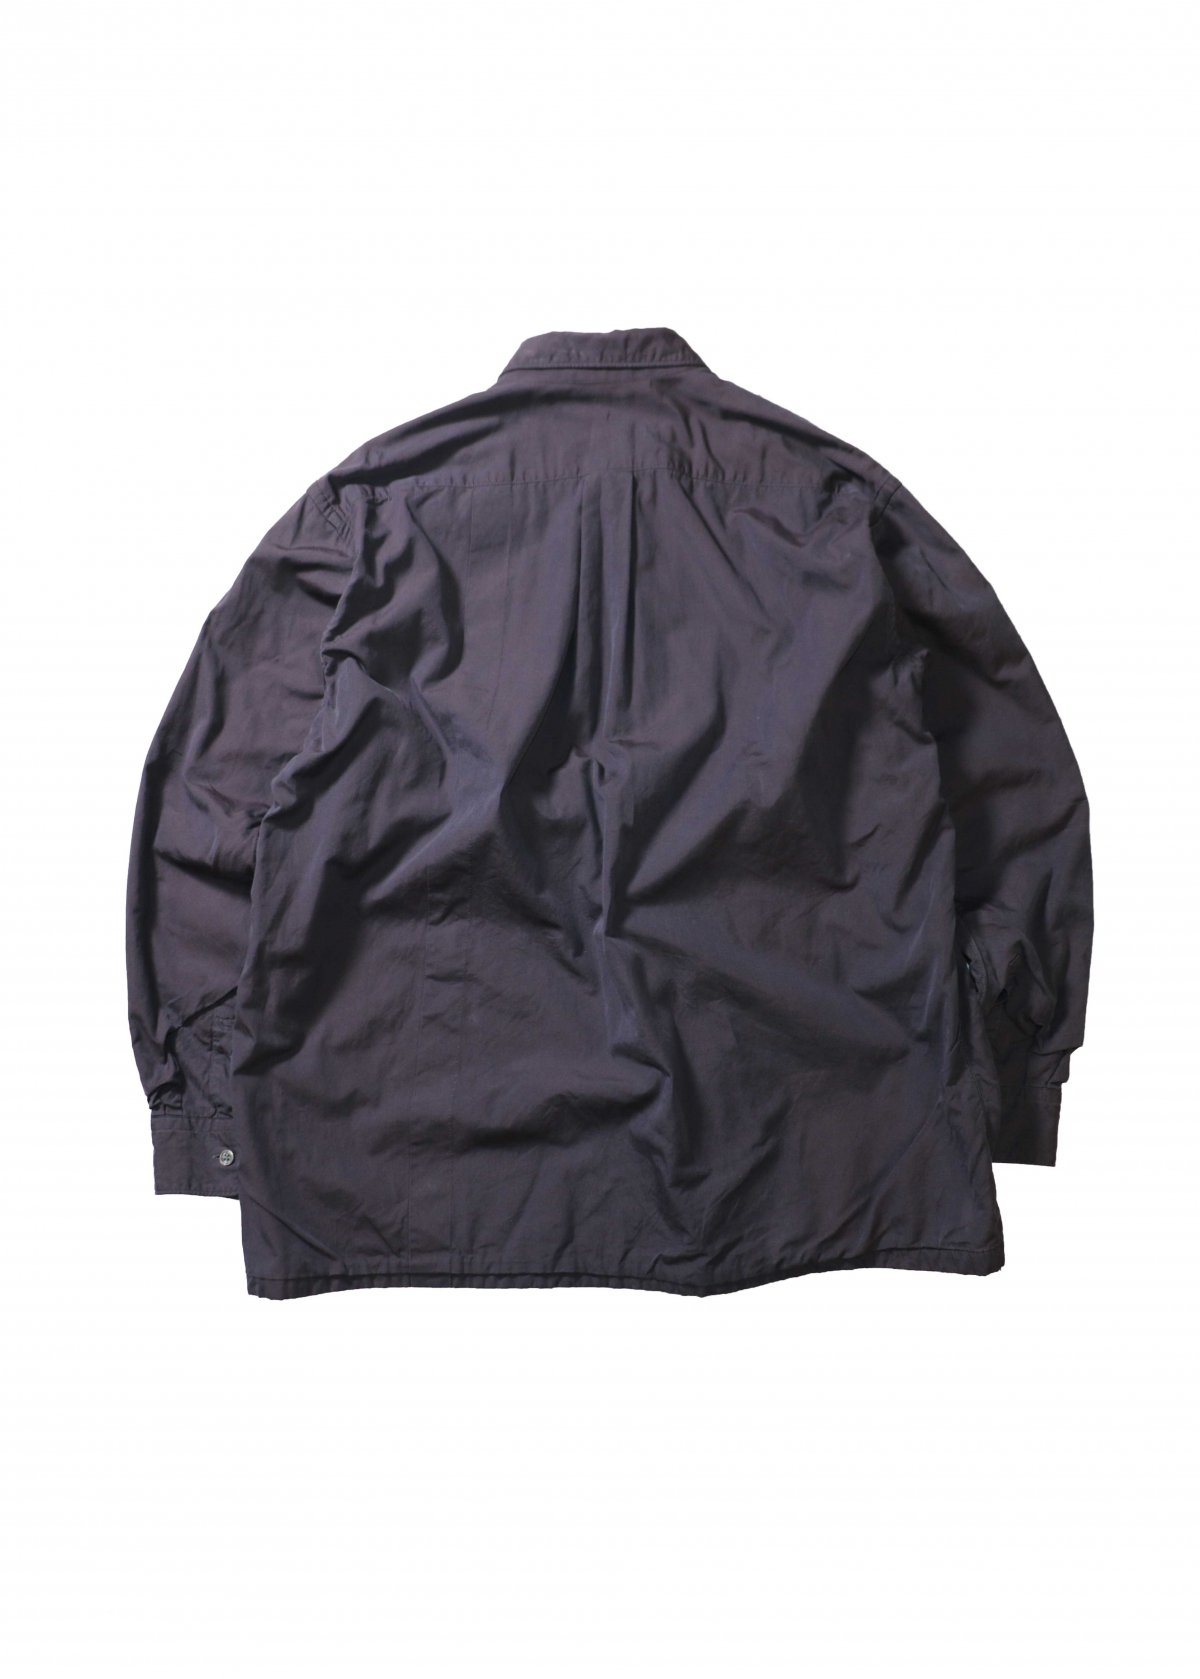 I&I 古着 通販 COMME des GARCONS SHIRT(MADE IN FRANCE) 詳細画像1